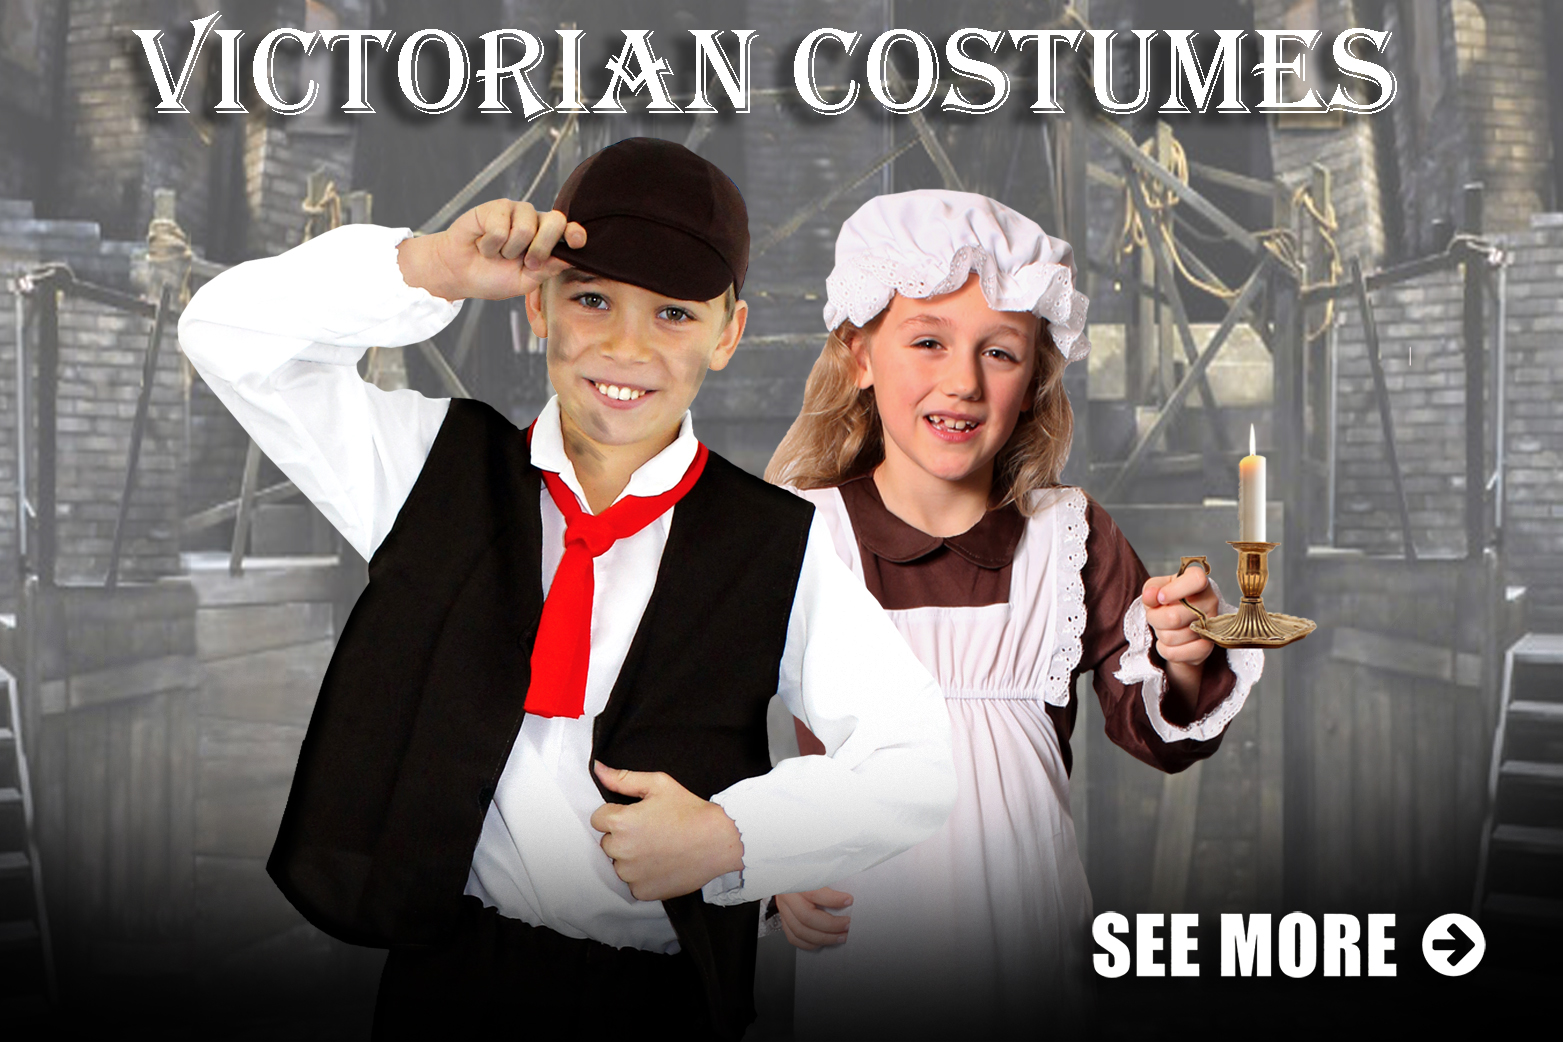 victorian costumes